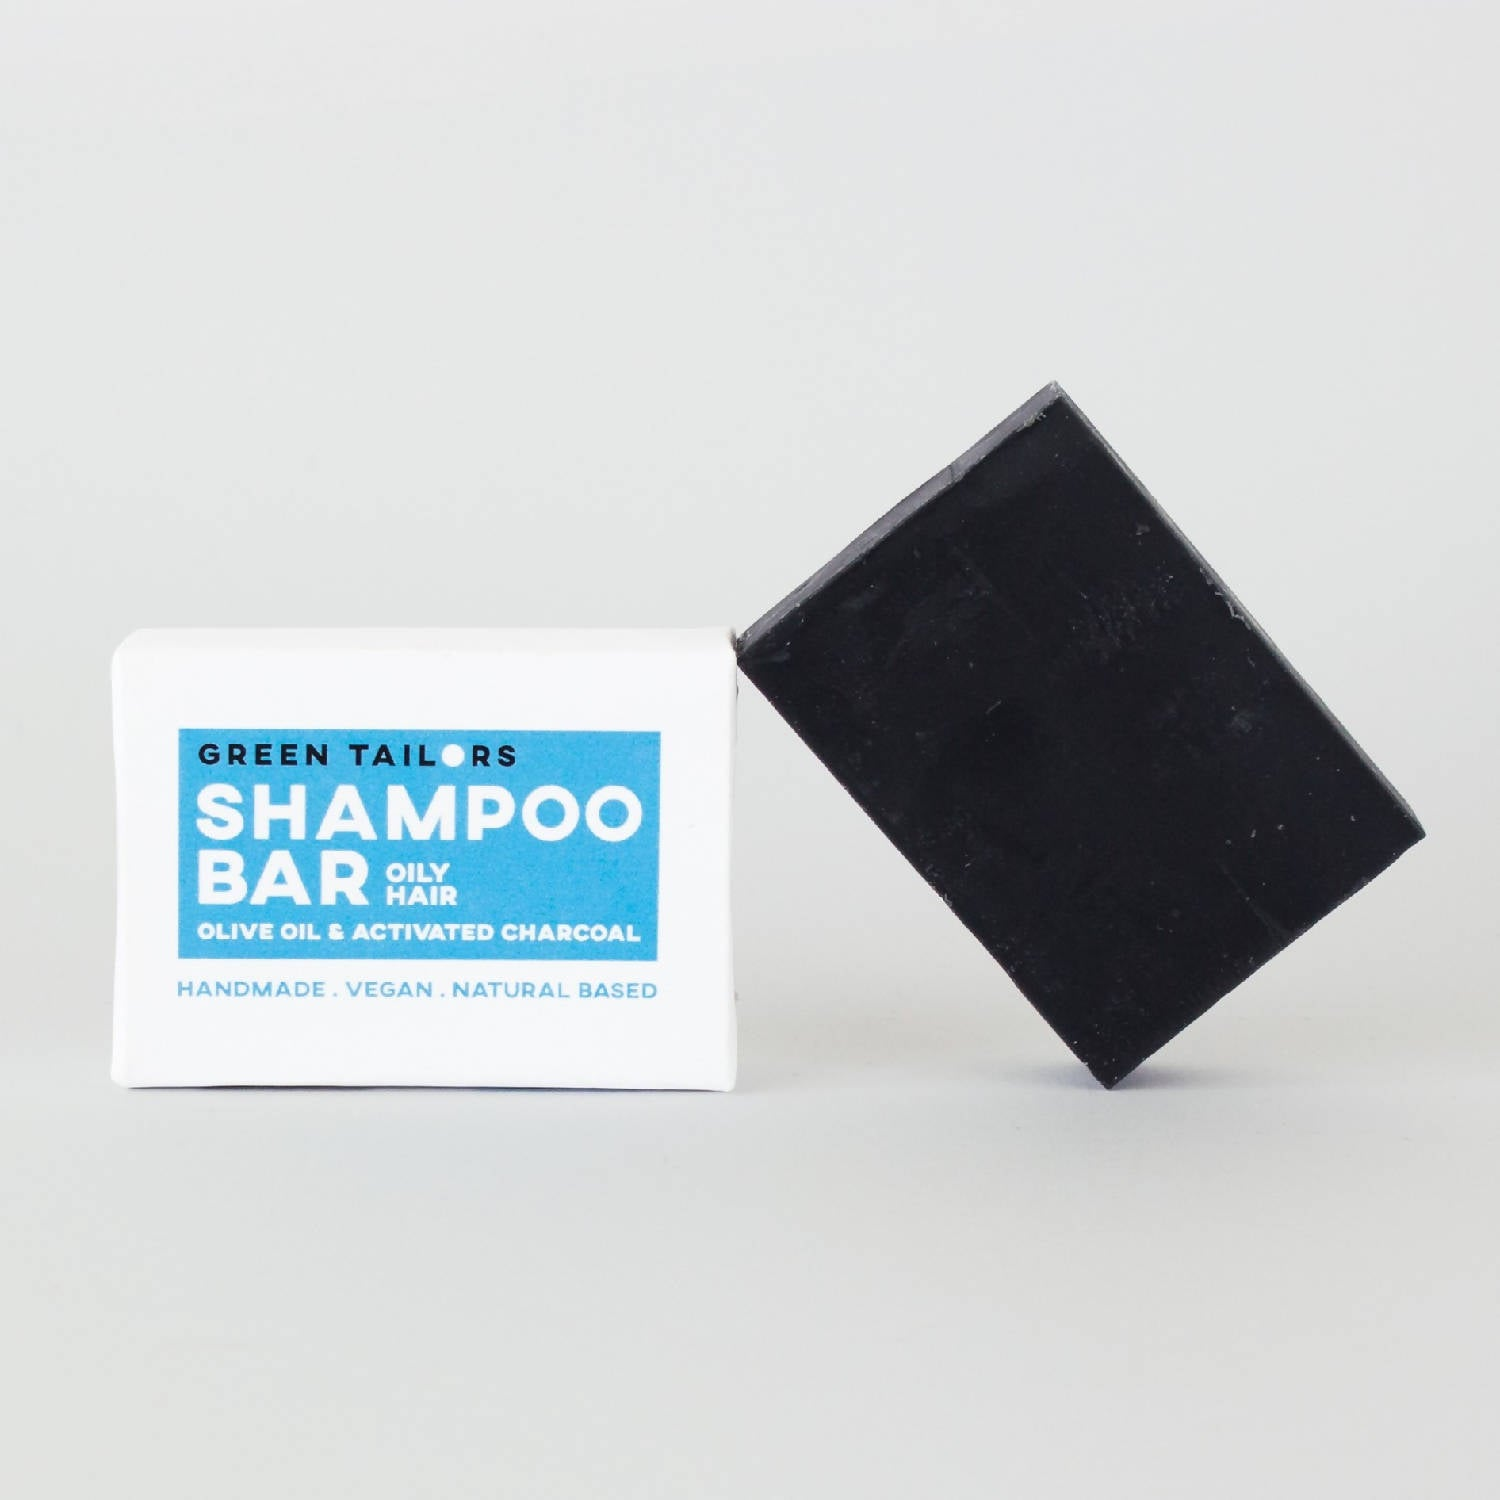 SHAMPOO BAR Oily Hair